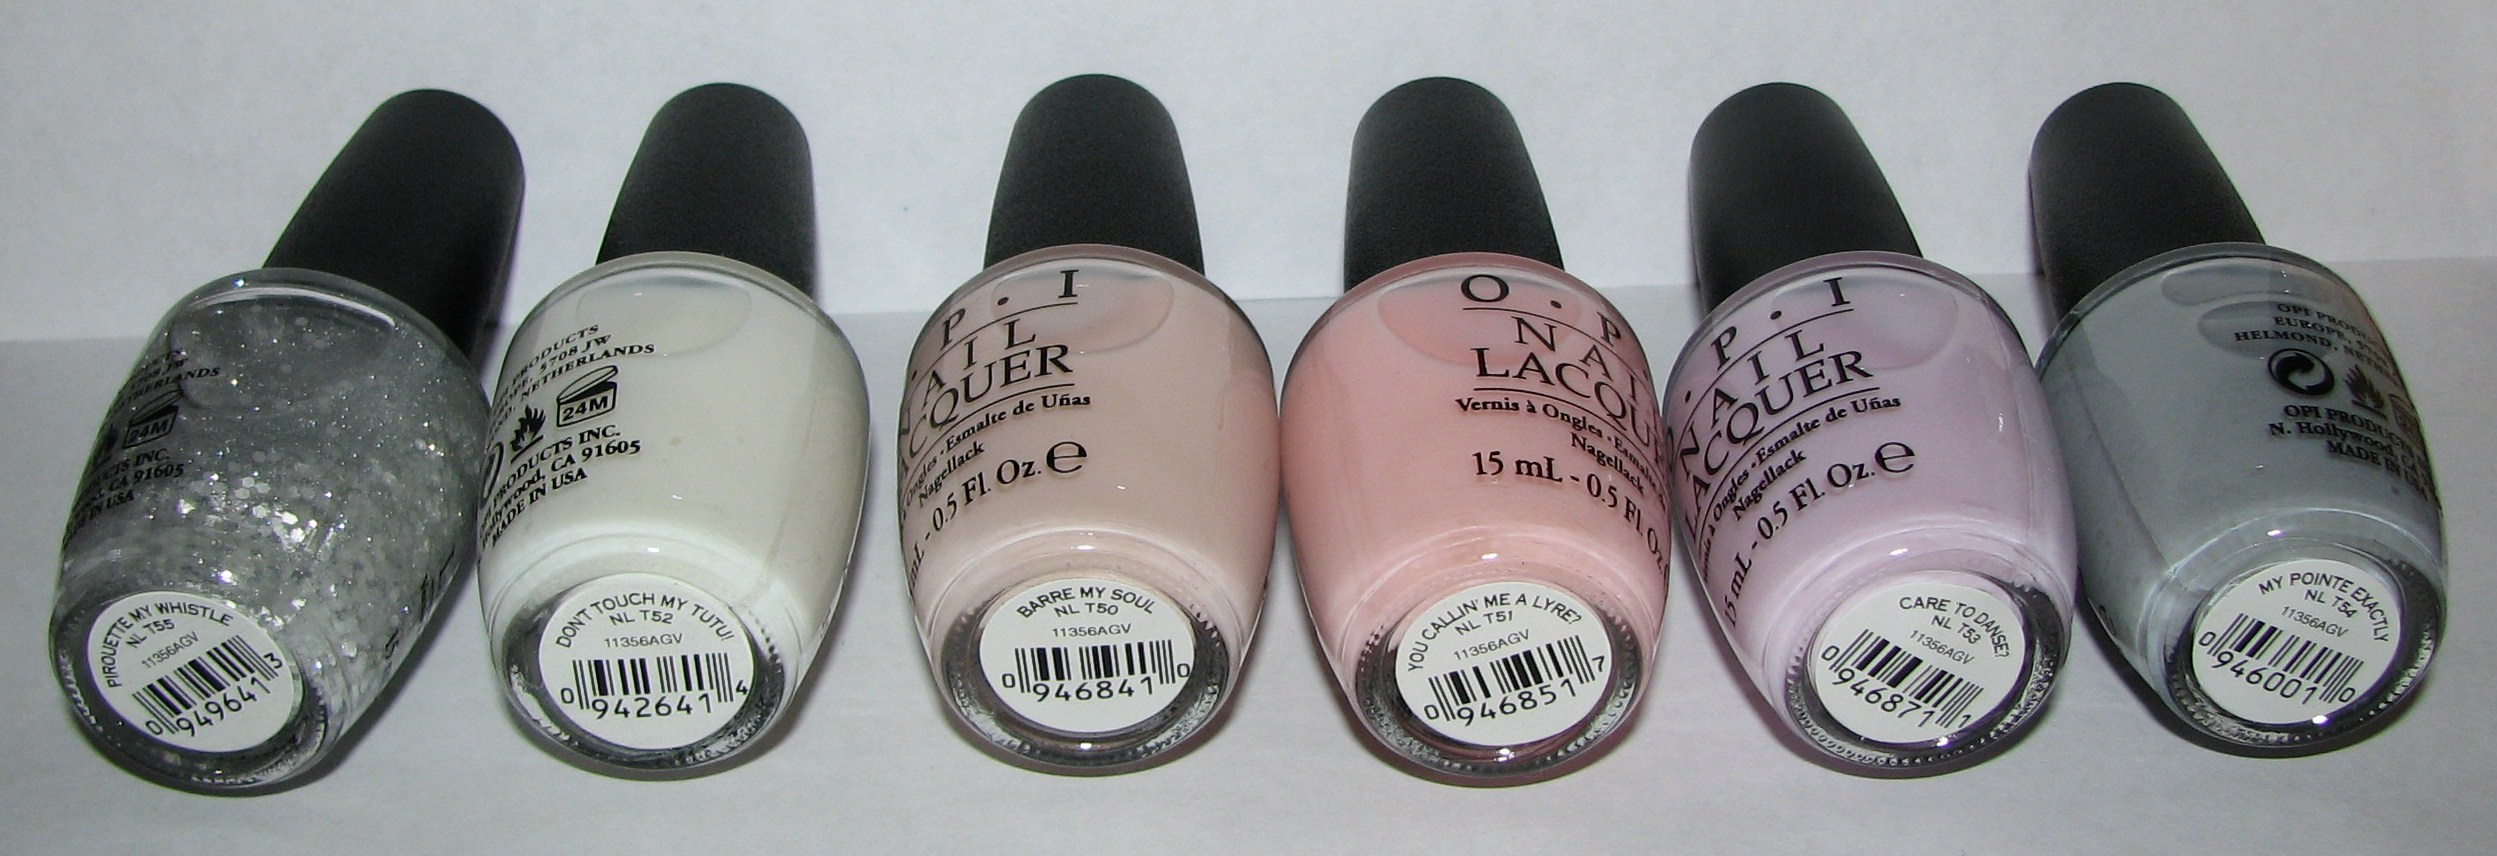 opi new york city ballet nail polish collection swatches and review blushing noir. Black Bedroom Furniture Sets. Home Design Ideas